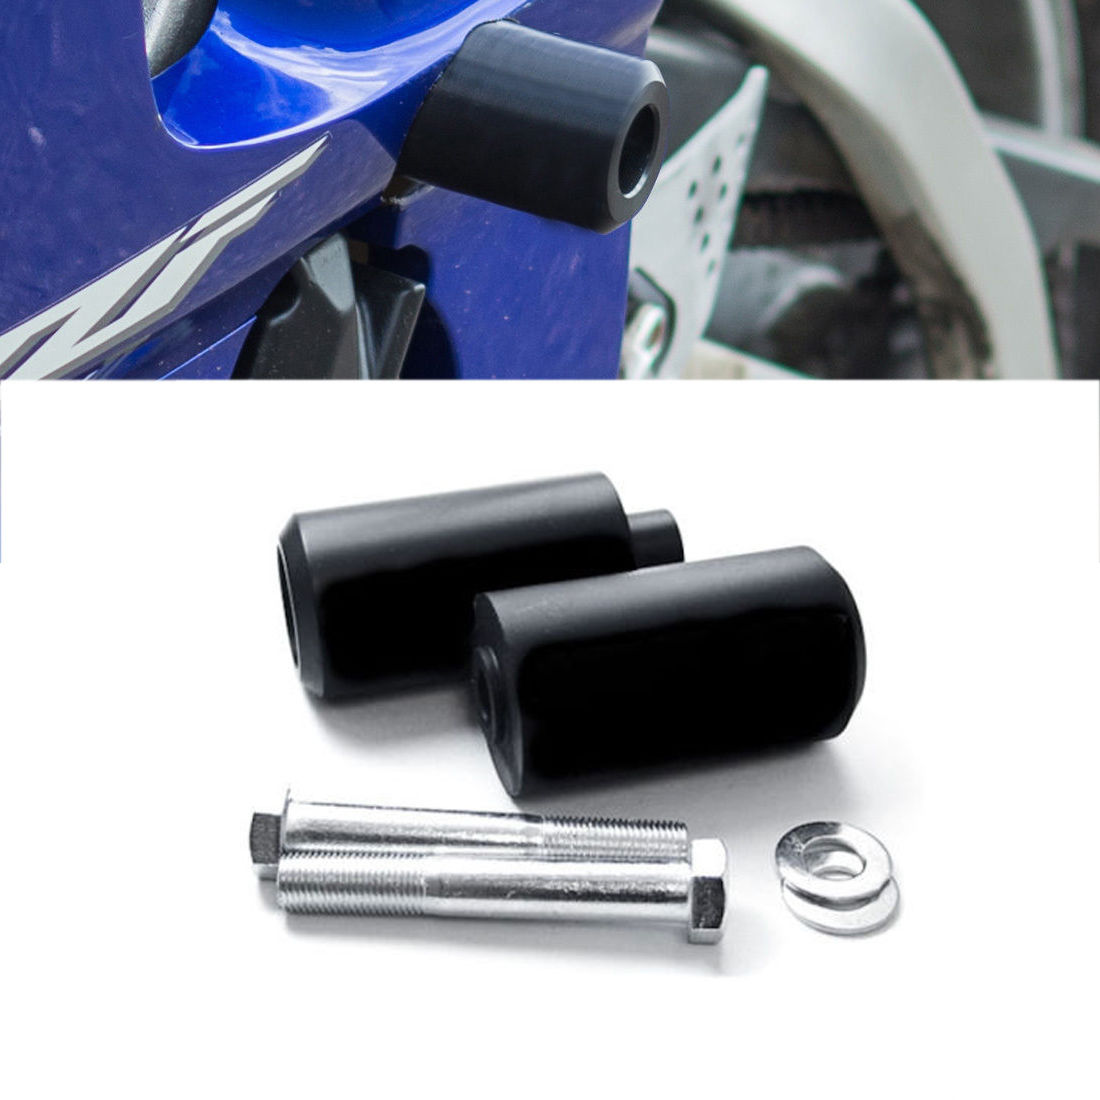 Motorcycle parts Black Frame Slider Crash Protector For 1999 2000 2001 2002 Yamaha YZF R6 YZFR6 ...